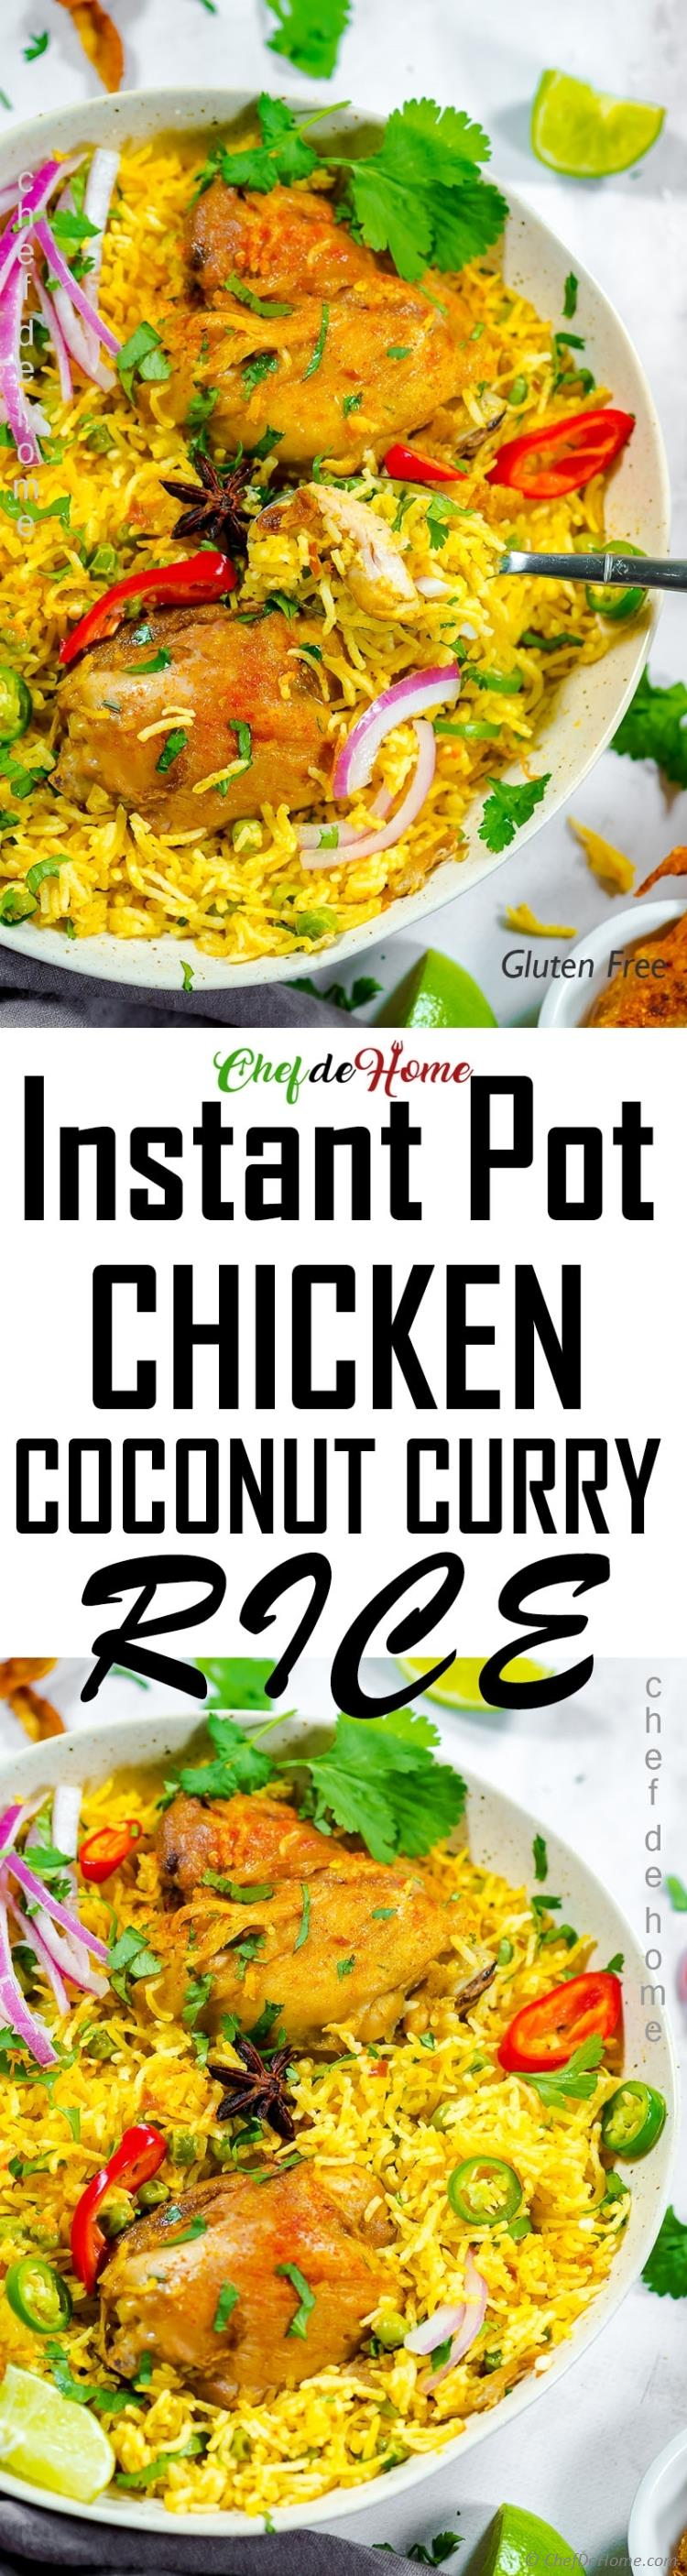 Curried Chicken Rice in Instant Pot